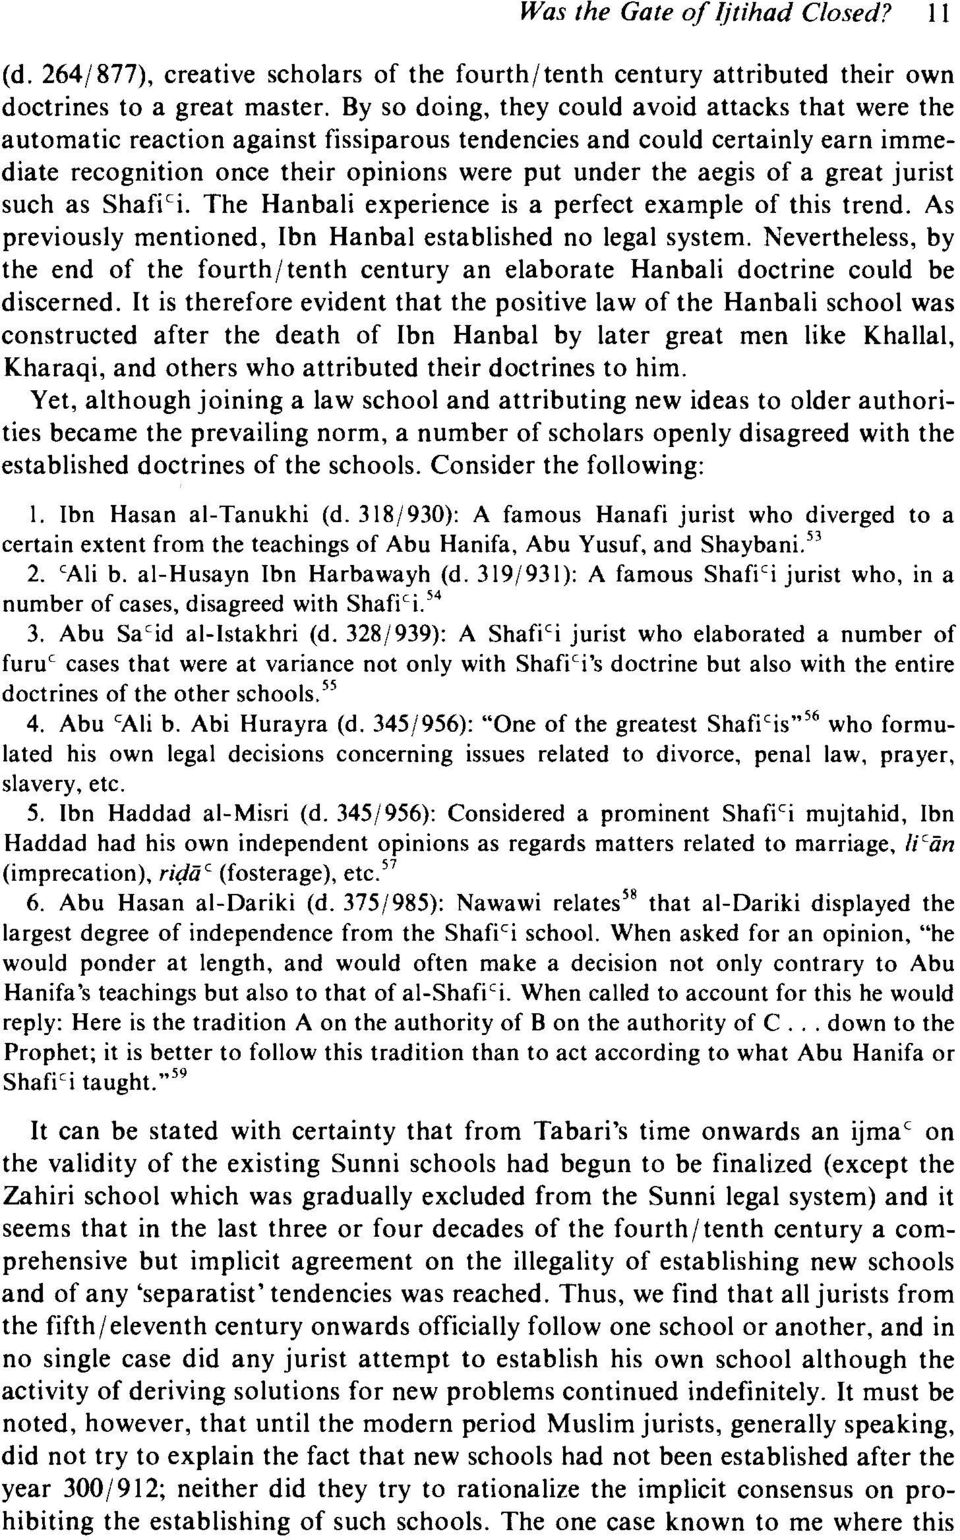 great jurist such as Shafi'i. The Hanbali experience is a perfect example of this trend. As previously mentioned, Ibn Hanbal established no legal system.